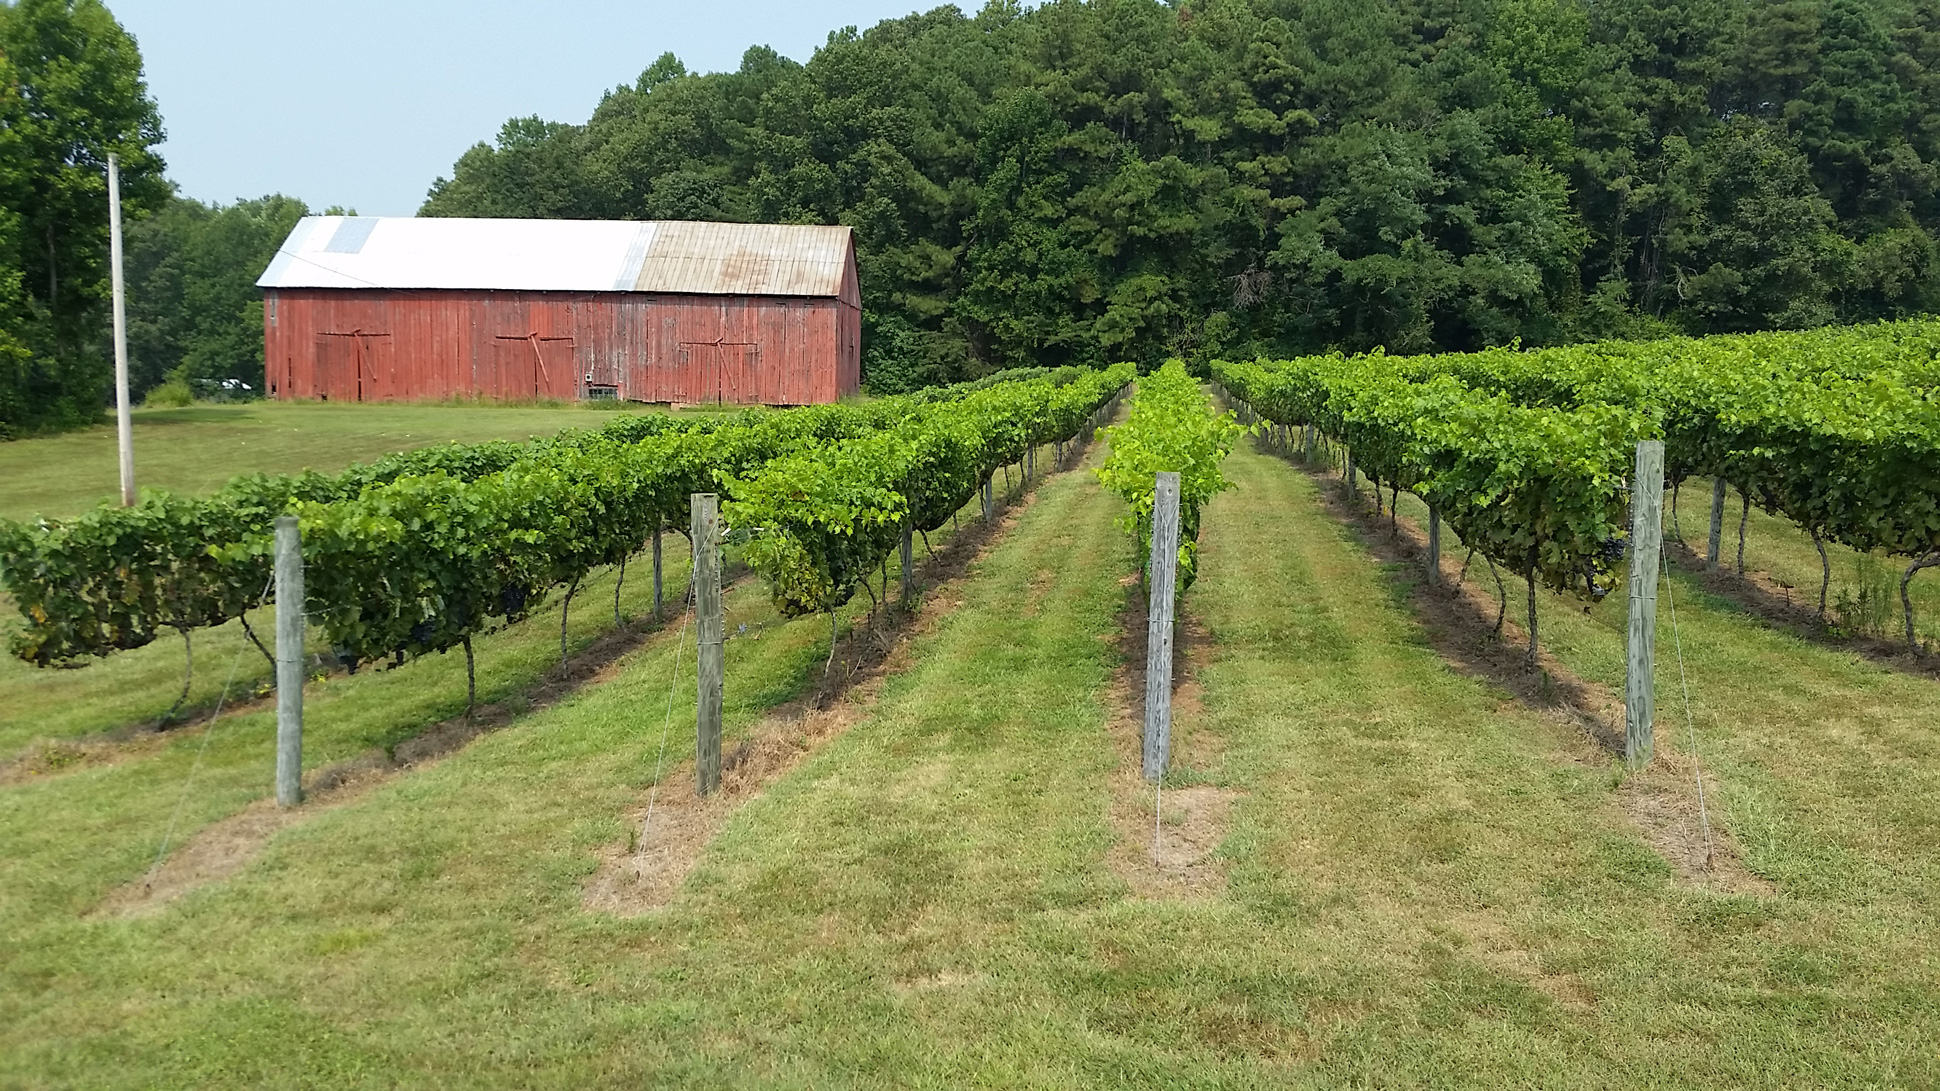 Maryland Grape Growers and University of Maryland Annual Summer Field Day is June 12, 2021 – EarlyBird pricing until Monday 10 AM.